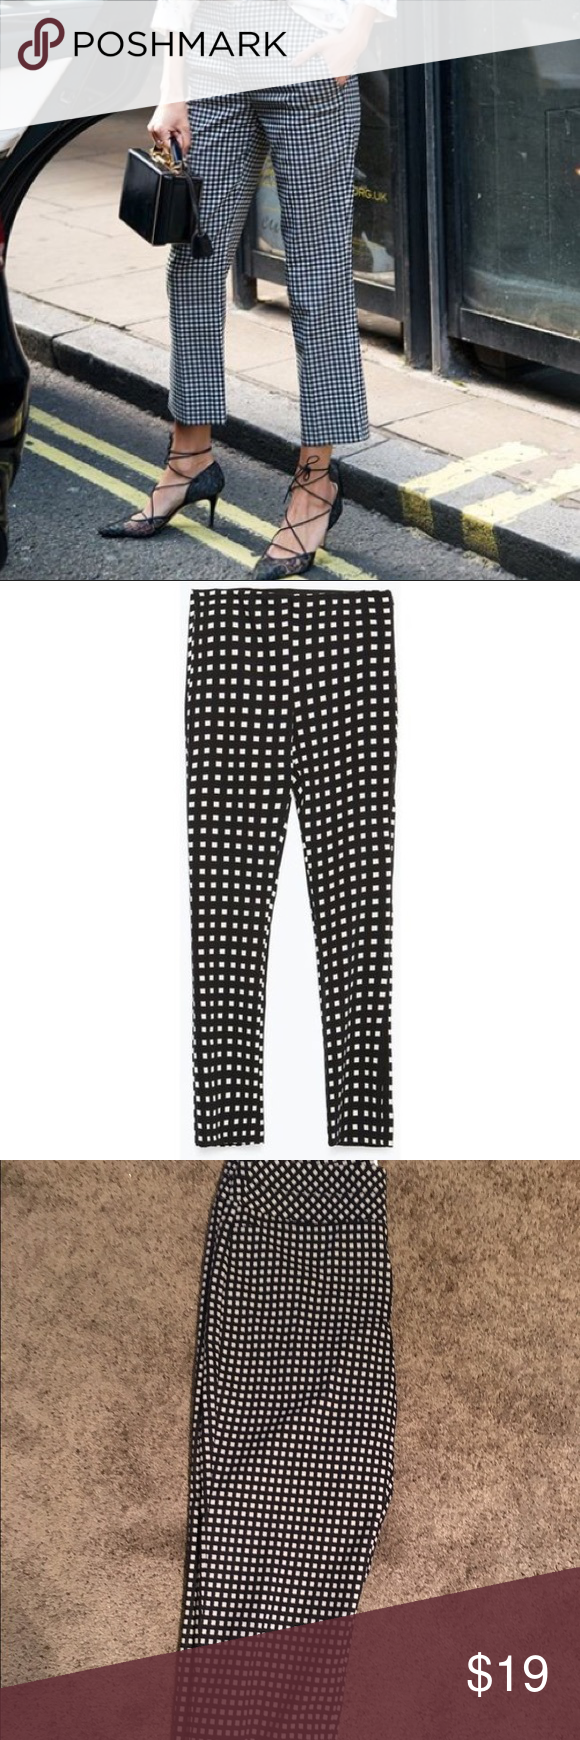 Elle beautiful Navy/Cream checked cropped pants 10 🎀Elle beautiful Navy/Cream...,  #beautiful #checked #cropped #Elle #NavyCream #pants #tennisshoeoutfitsummerplussize